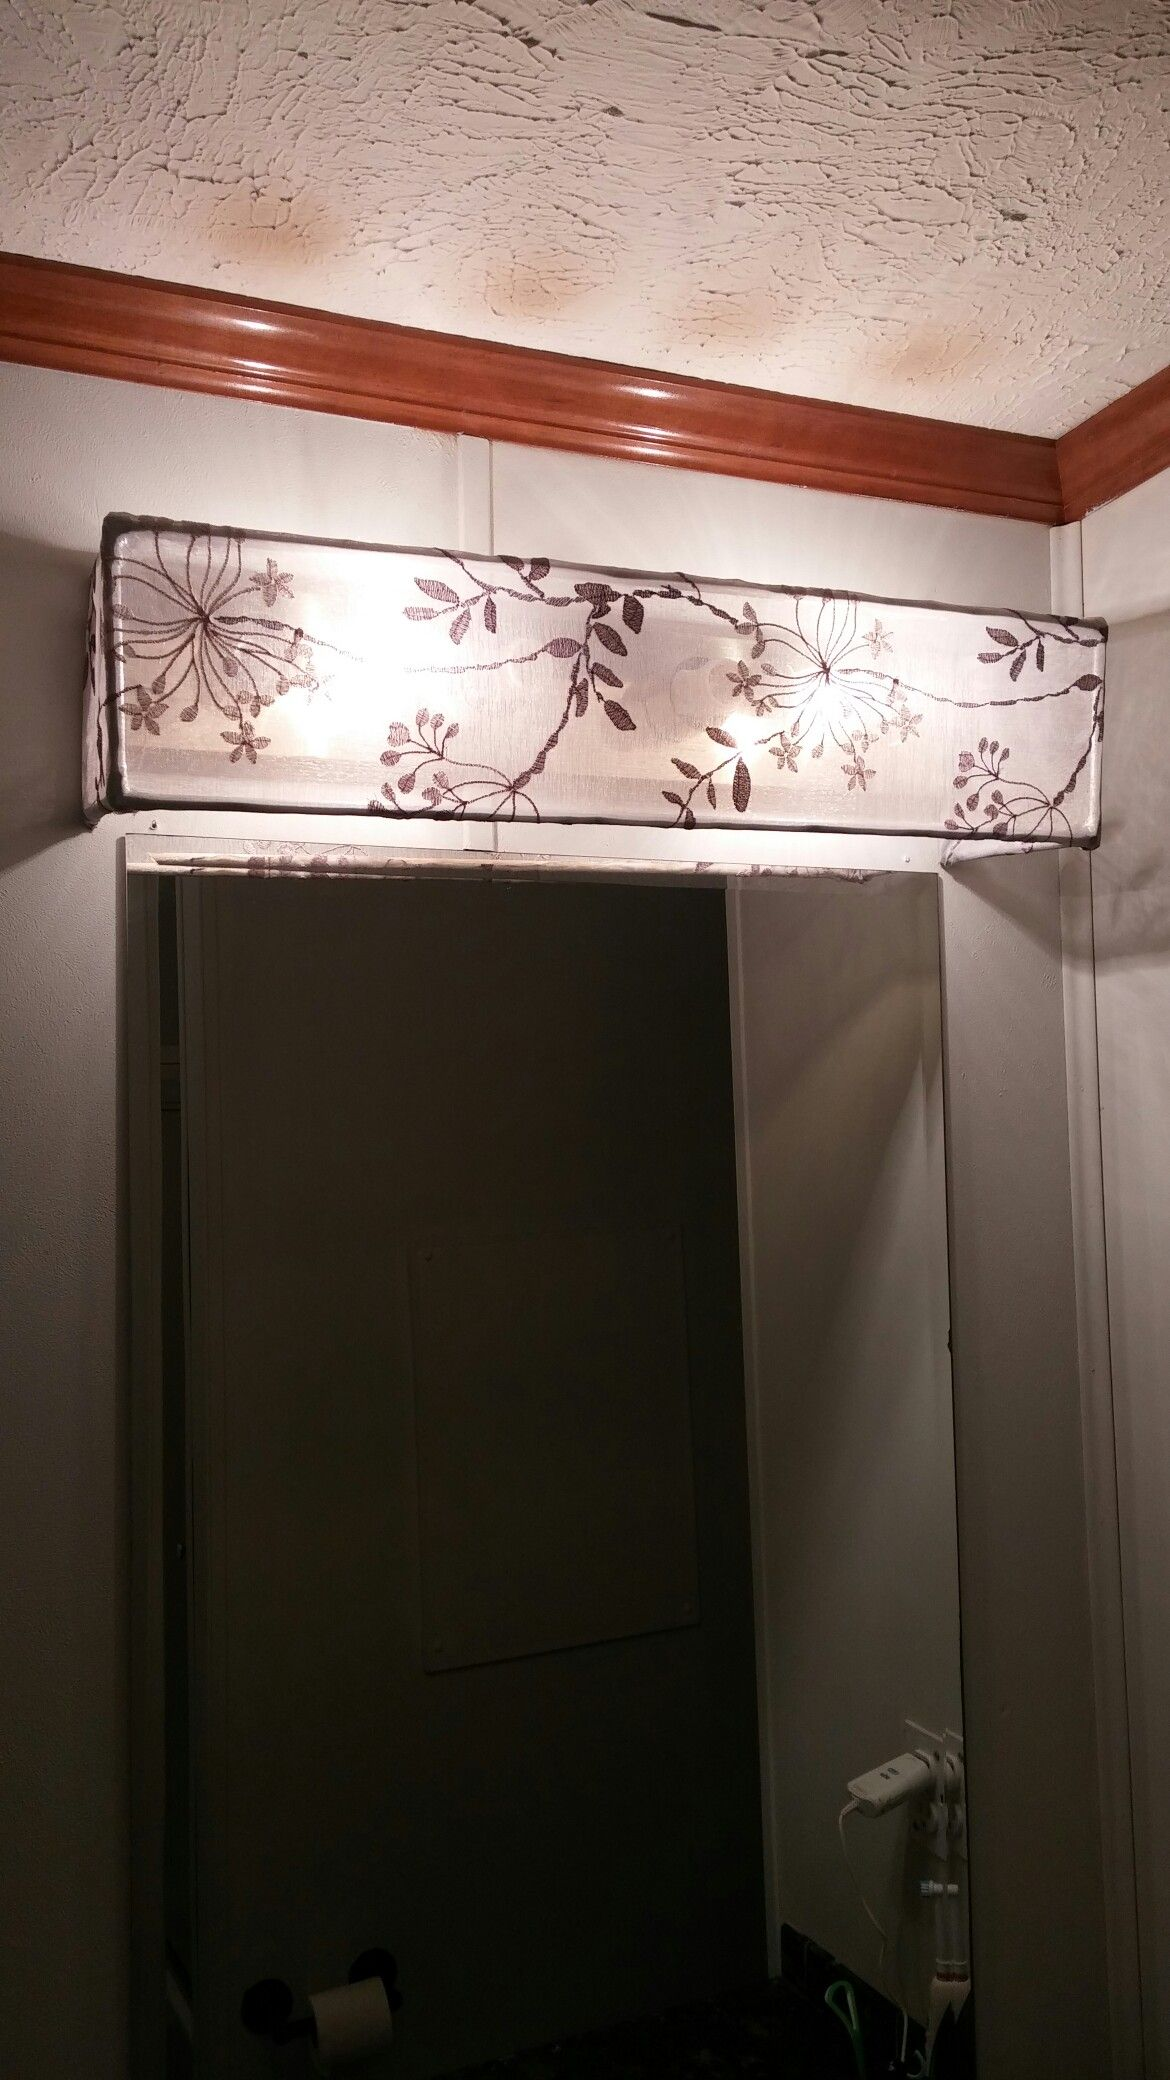 DIY Vanity Light Shade Dowel rods and a curtain sheer hot glued ...